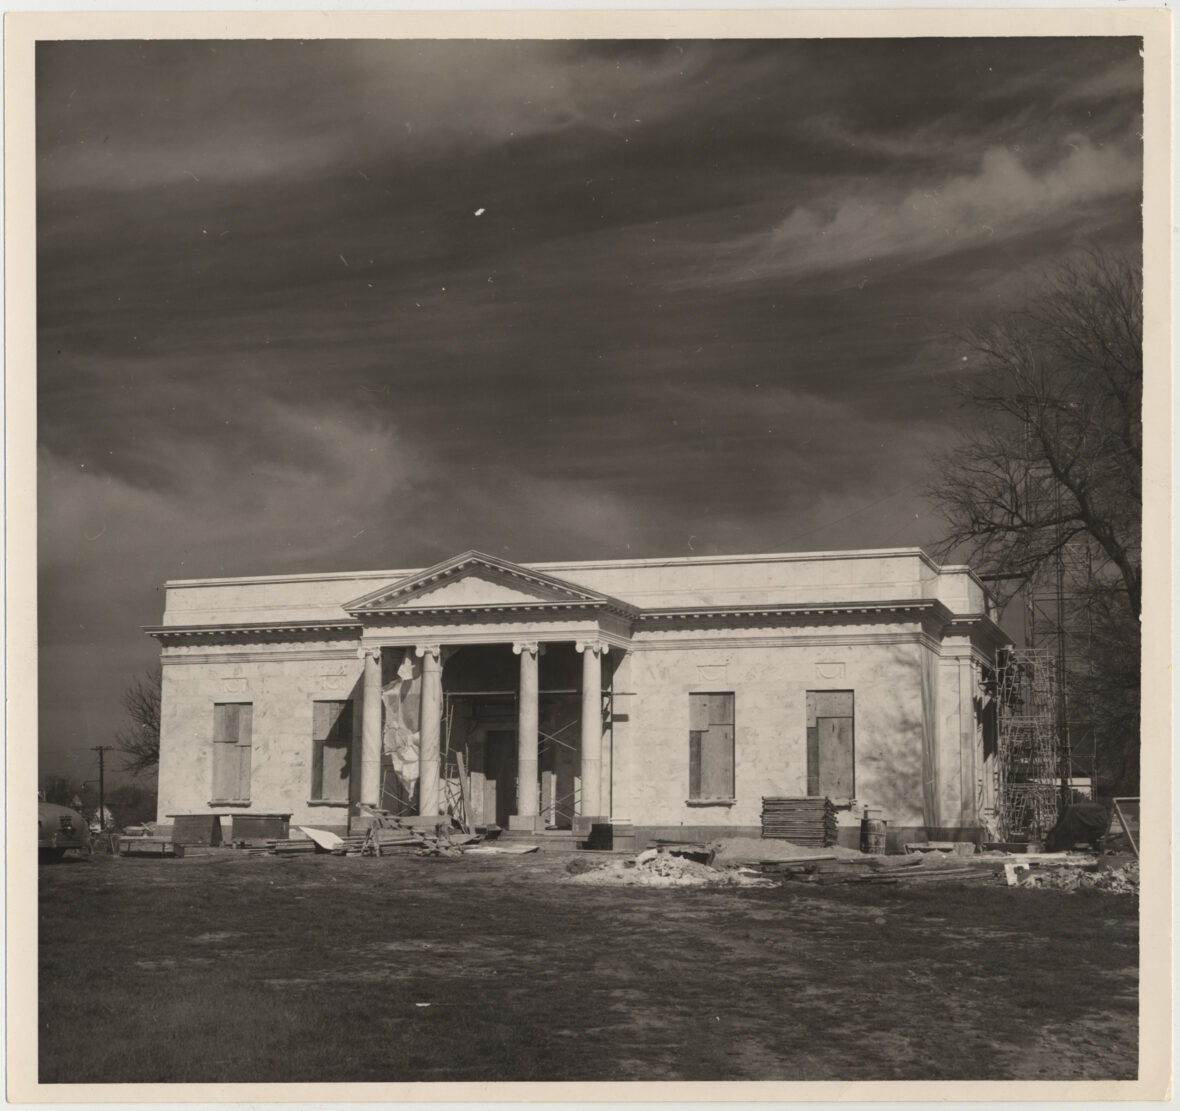 Sam Rayburn Library under construction, March 1957. Sam Rayburn Papers. di_03282